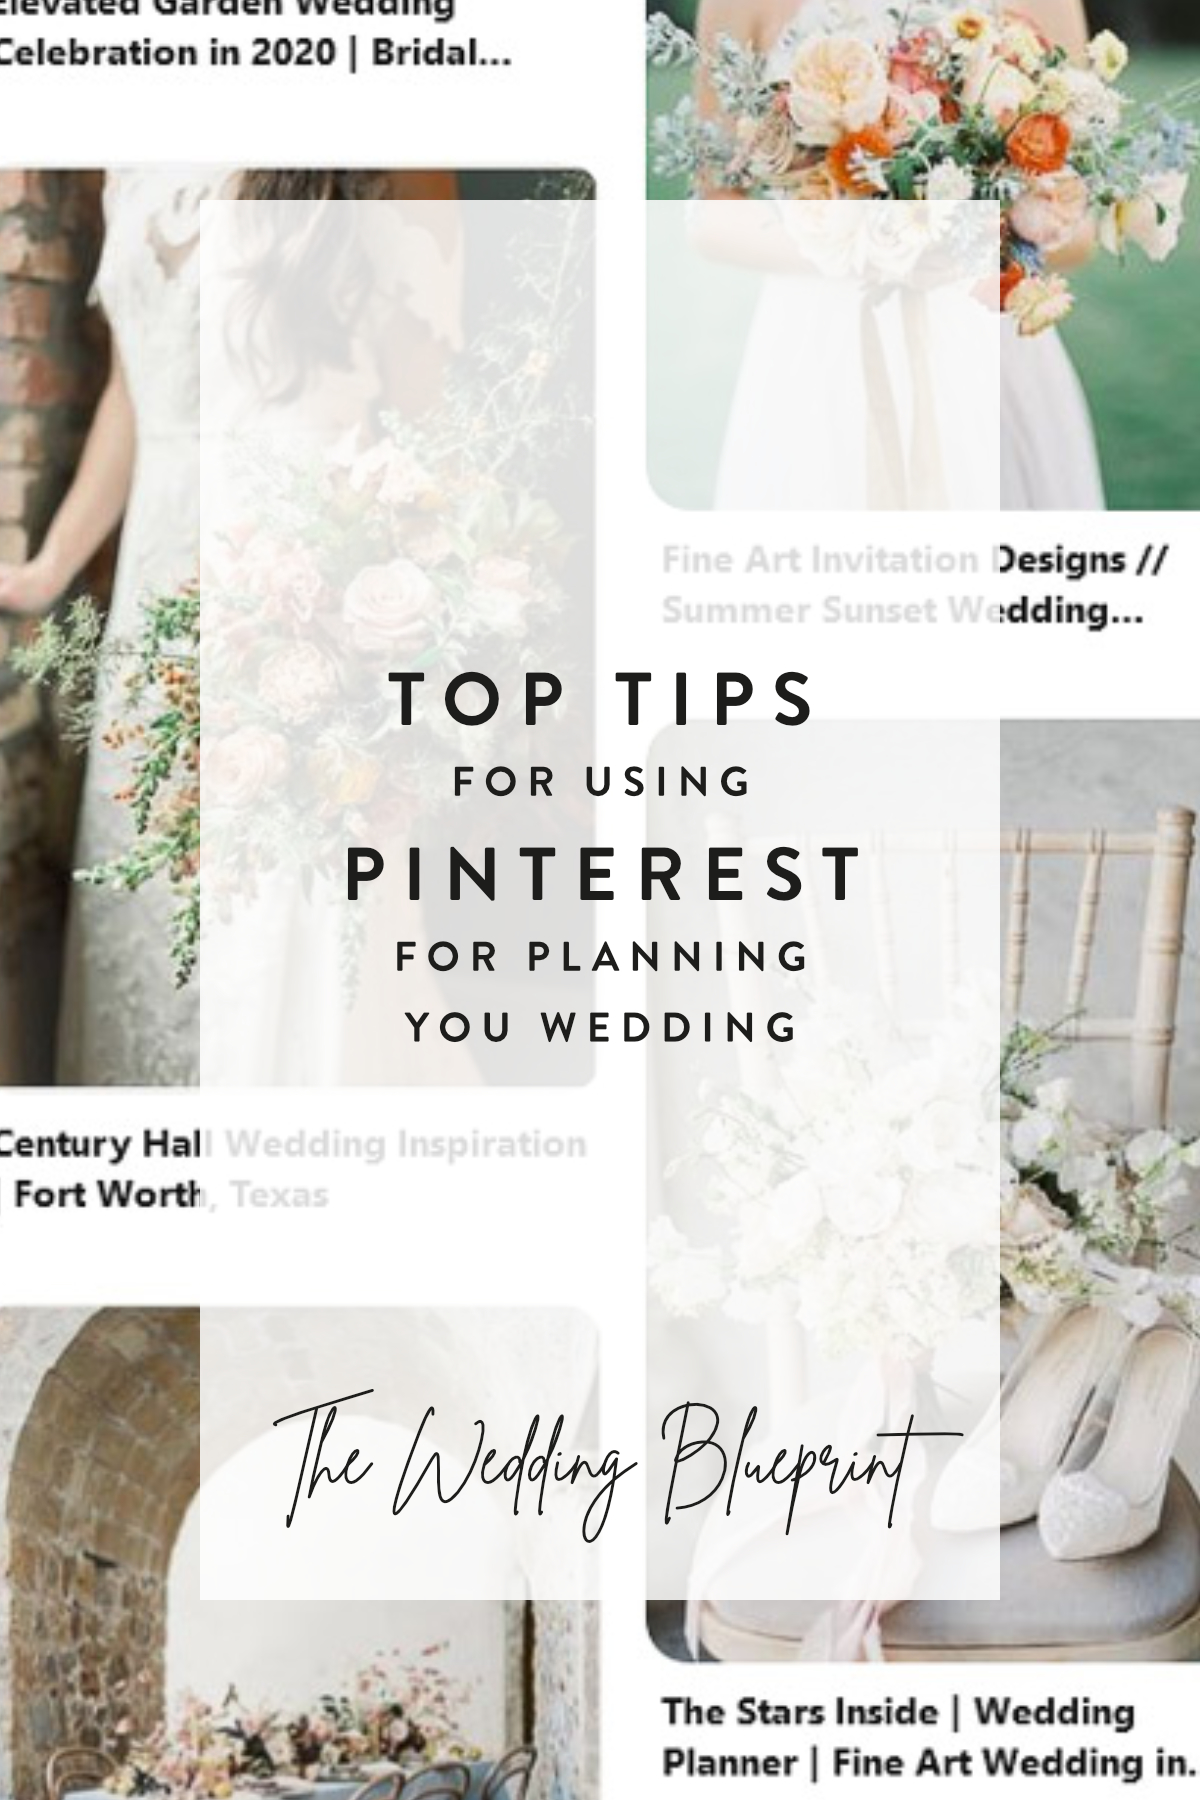 Top Tips for planning your wedding on Pinterest